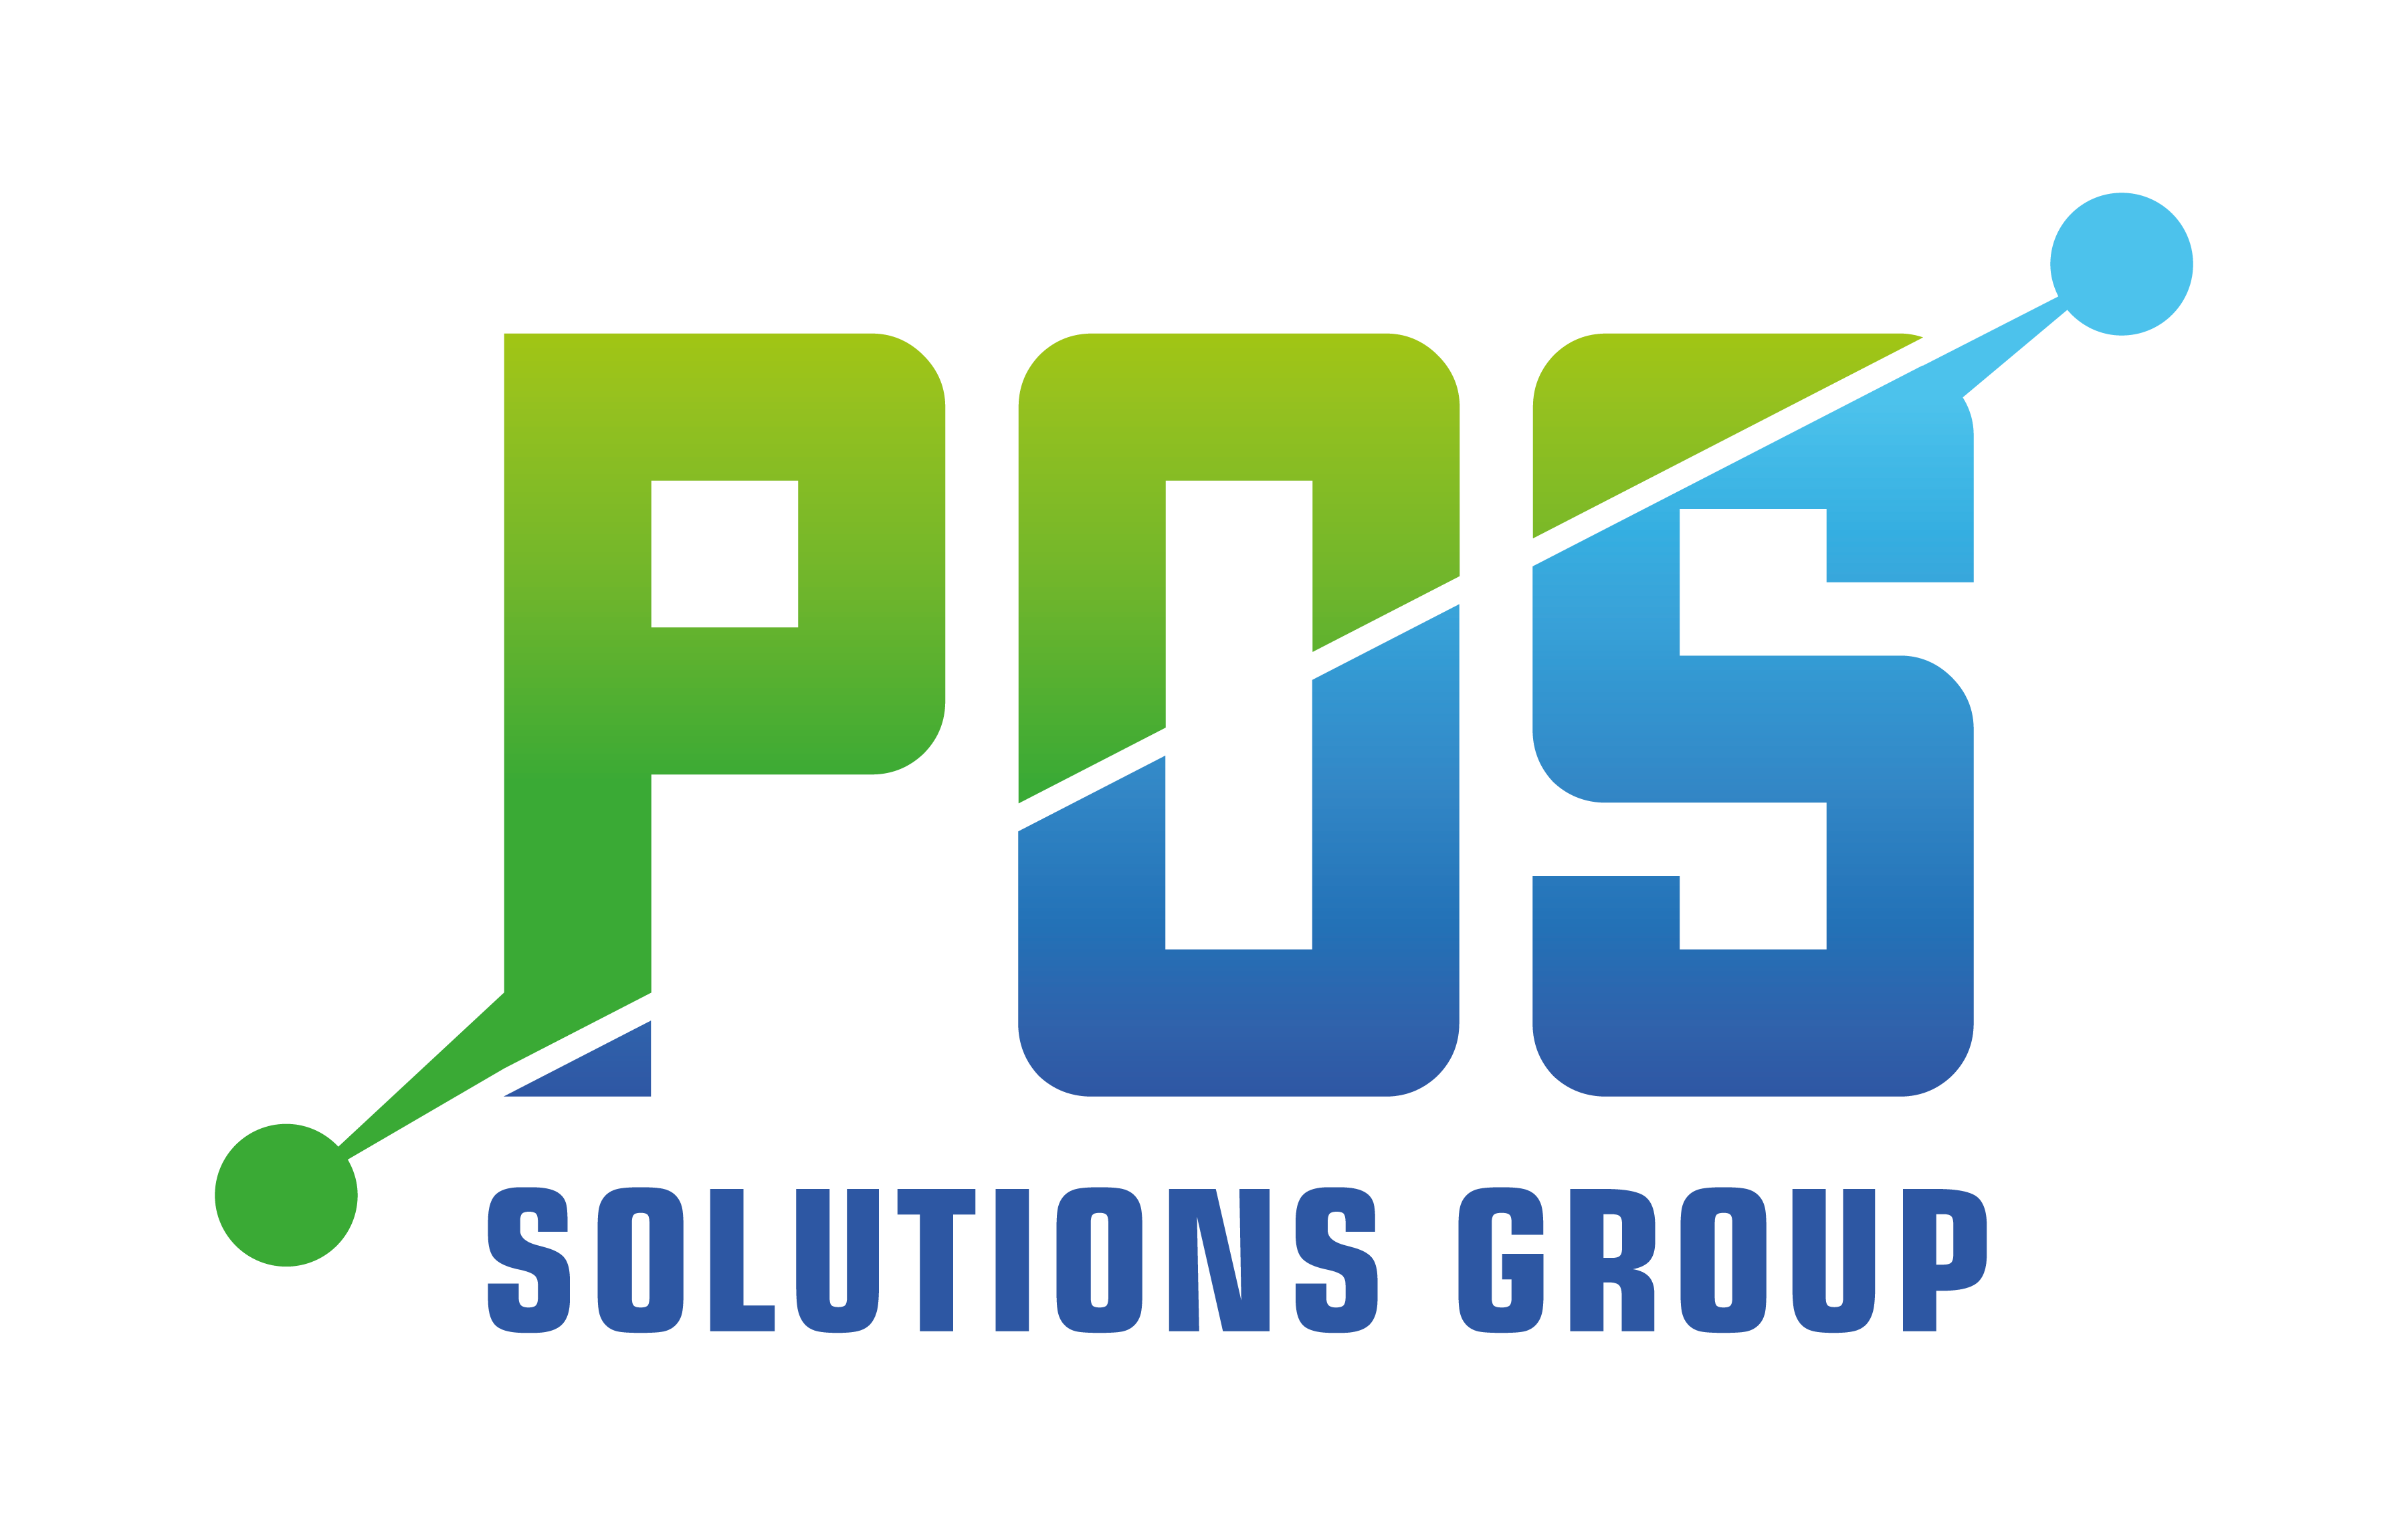 FT059 POSSolutionsGroup